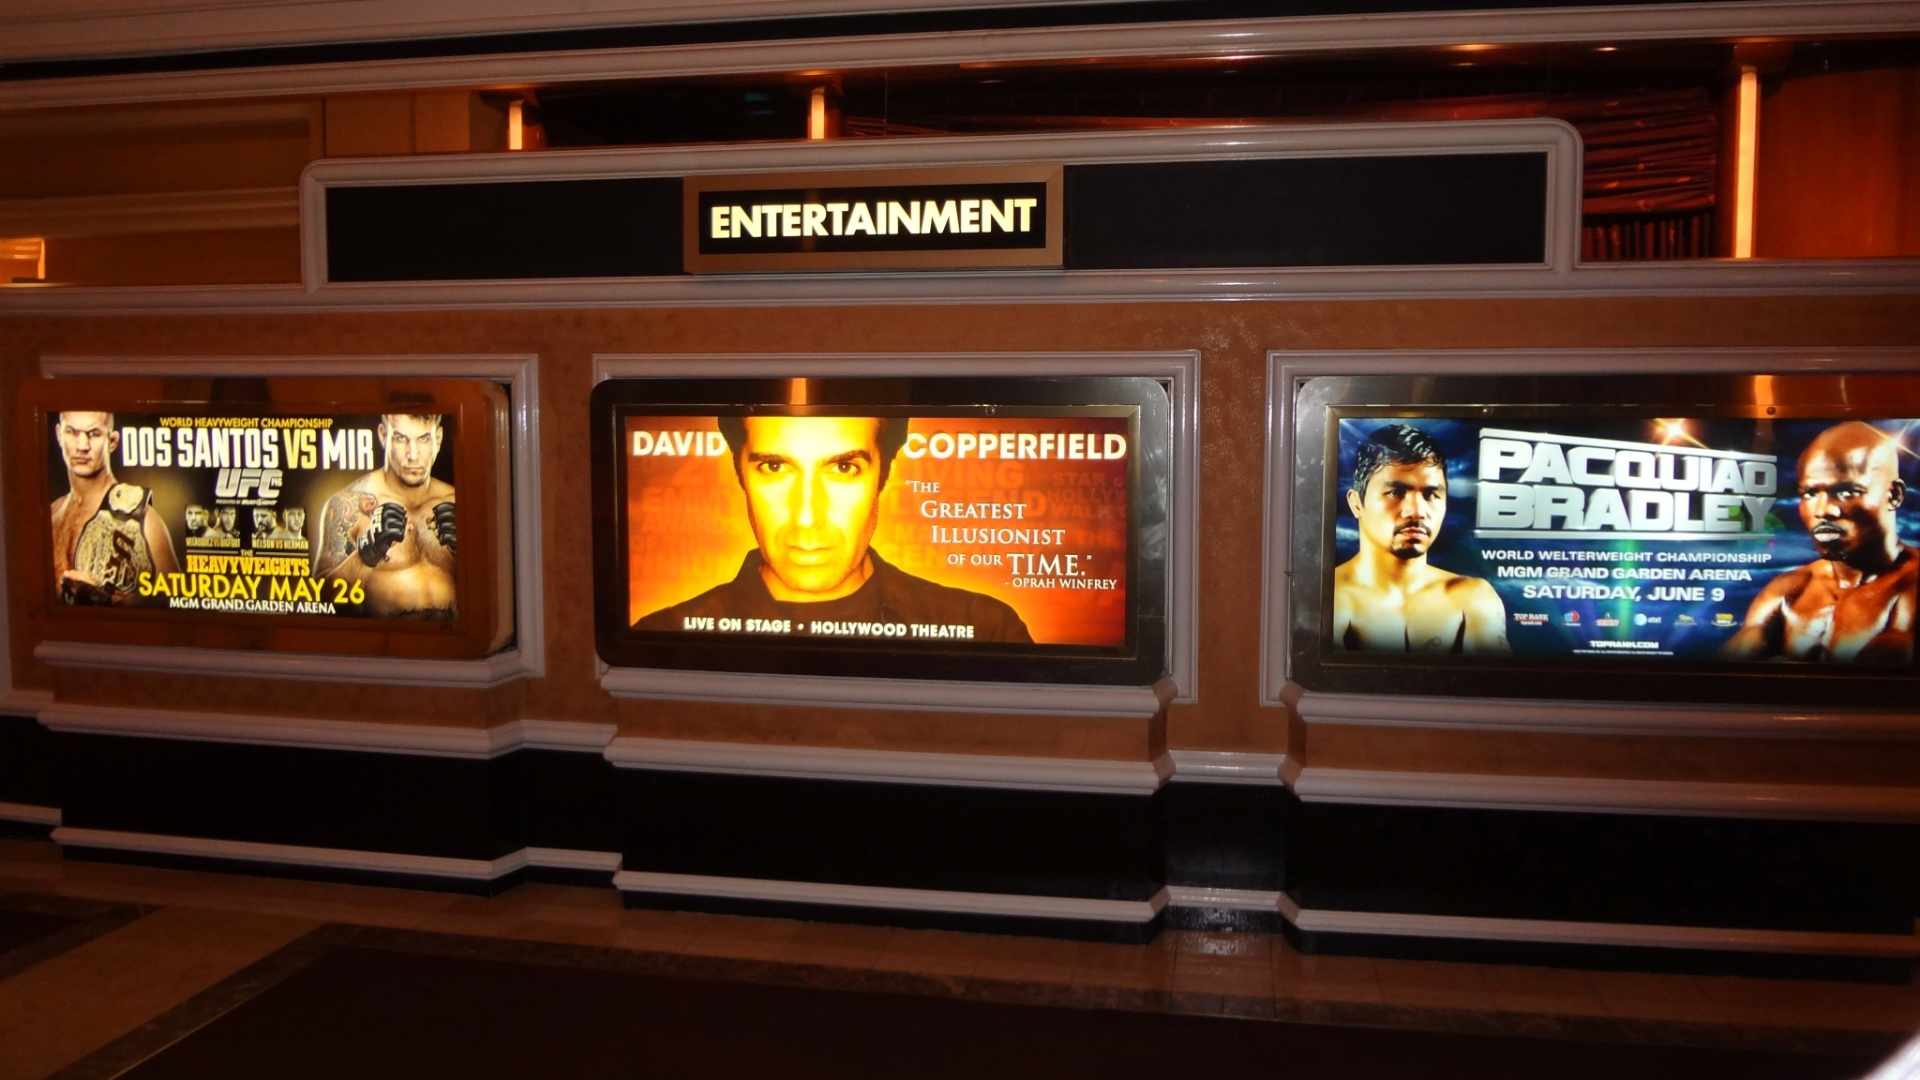 No MGM Grand Garden, cartaz do UFC 146 divide espaço com o ilusionista David Copperfield e com a luta de boxe entre Manny Pacquiao e Miguel Cotto